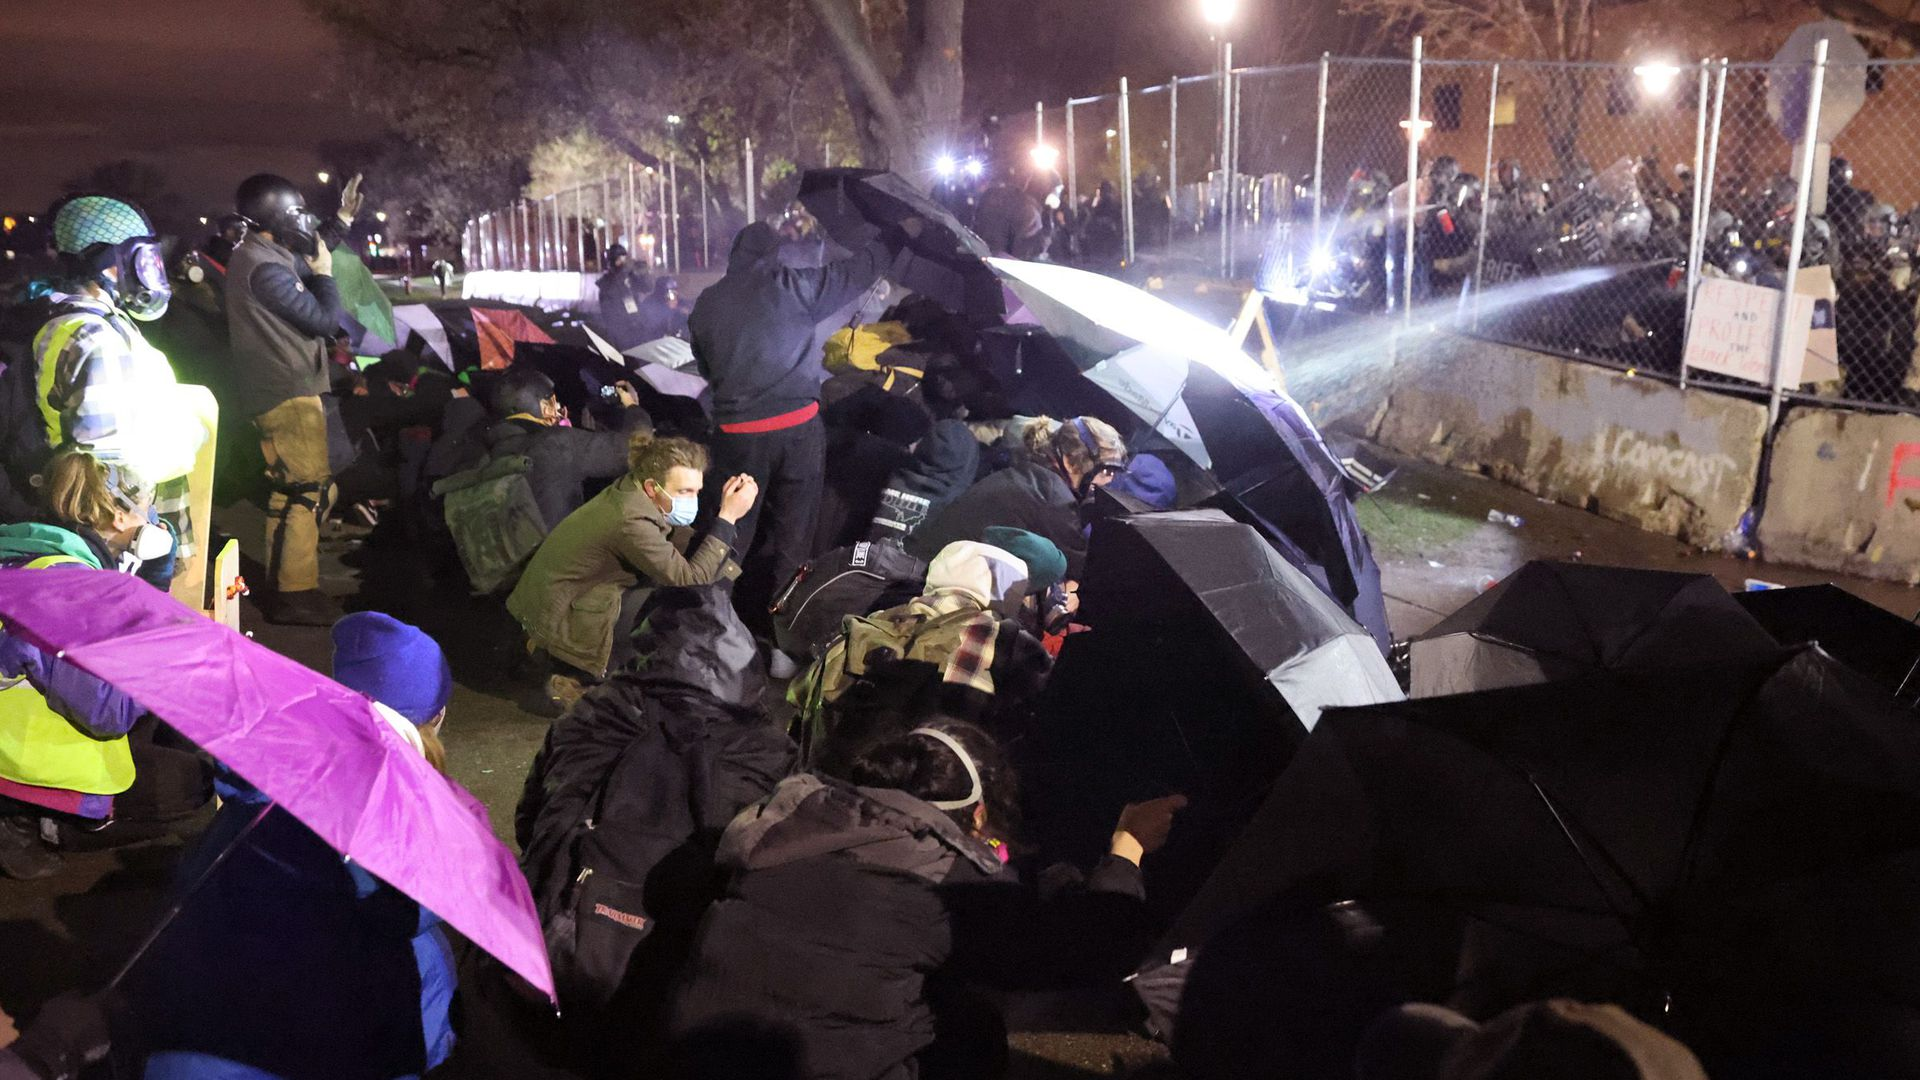 Demonstrators protesting the April 11 death of Wright use umbrellas for protection from pepper spray and rubber bullets outside the police station April 14.